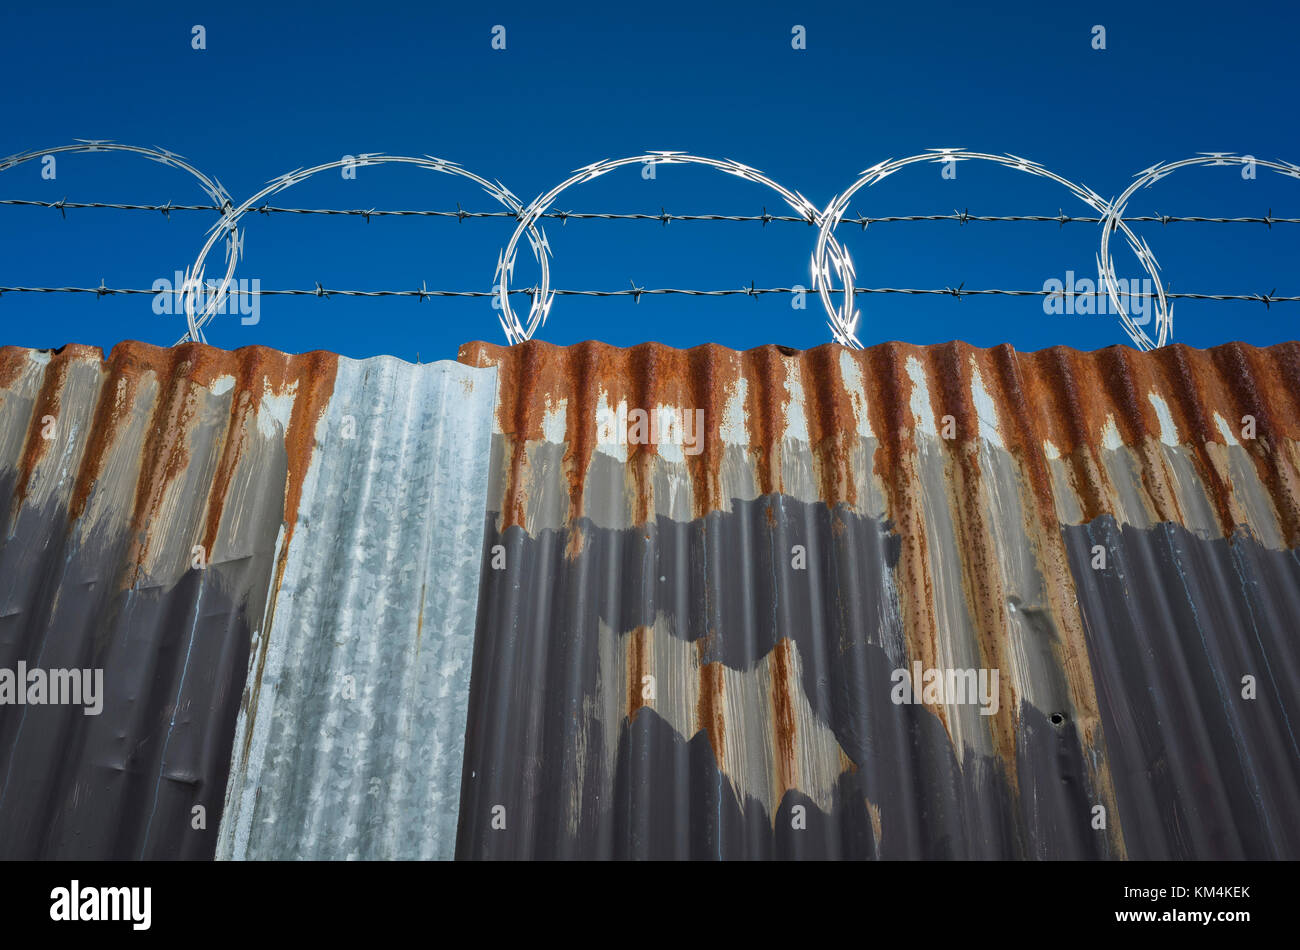 Low angle view of worn corrugated metal fence, razor wire above. - Stock Image